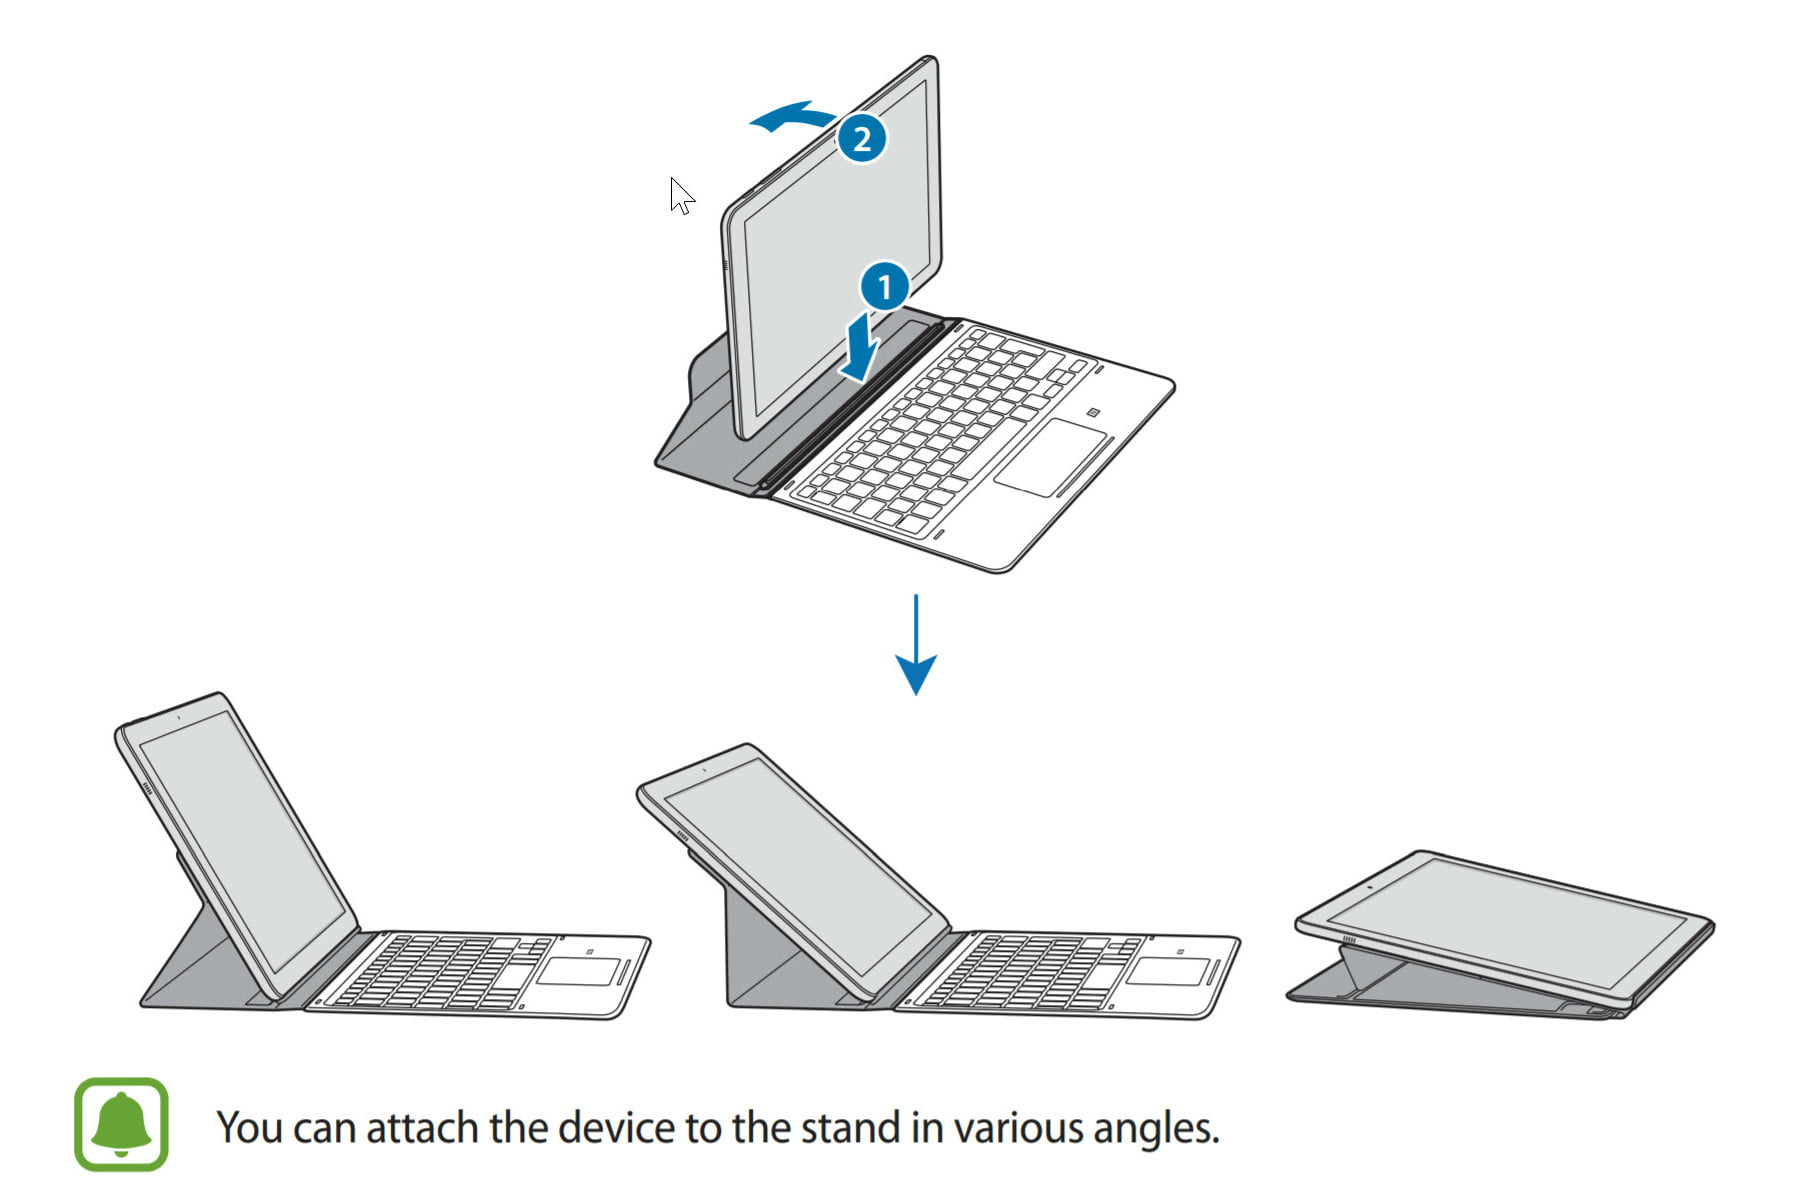 Samsung Galaxy Book Manual Reveals Some Interesting